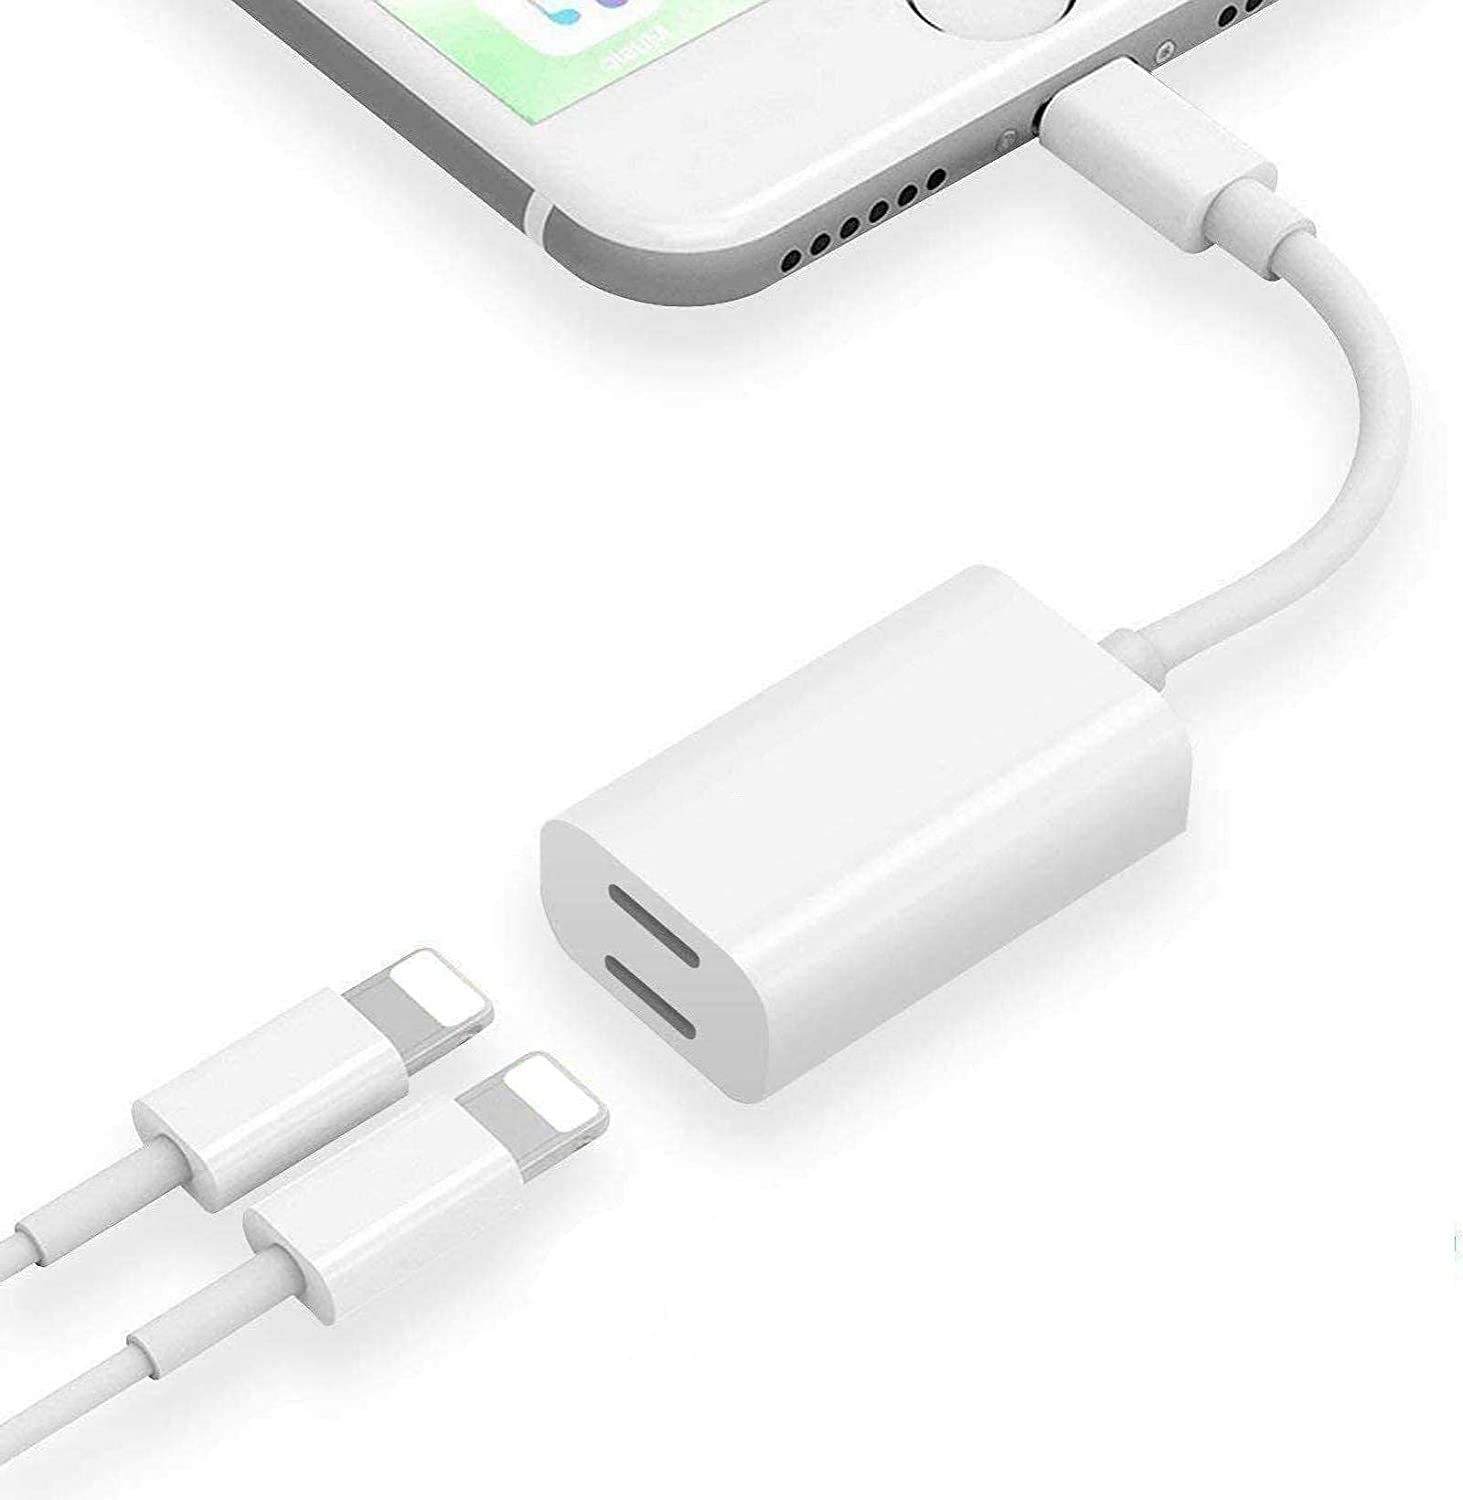 [Apple MFi Certified] iPhone Headphones Adapter & Splitter, 2 in 1 Dual Lightning Headphone Jack Audio & Charge Adapter Compatible for iPhone 12/11/XS/XR/X/8 7, Support Call+Charge+Sync+Volume Control